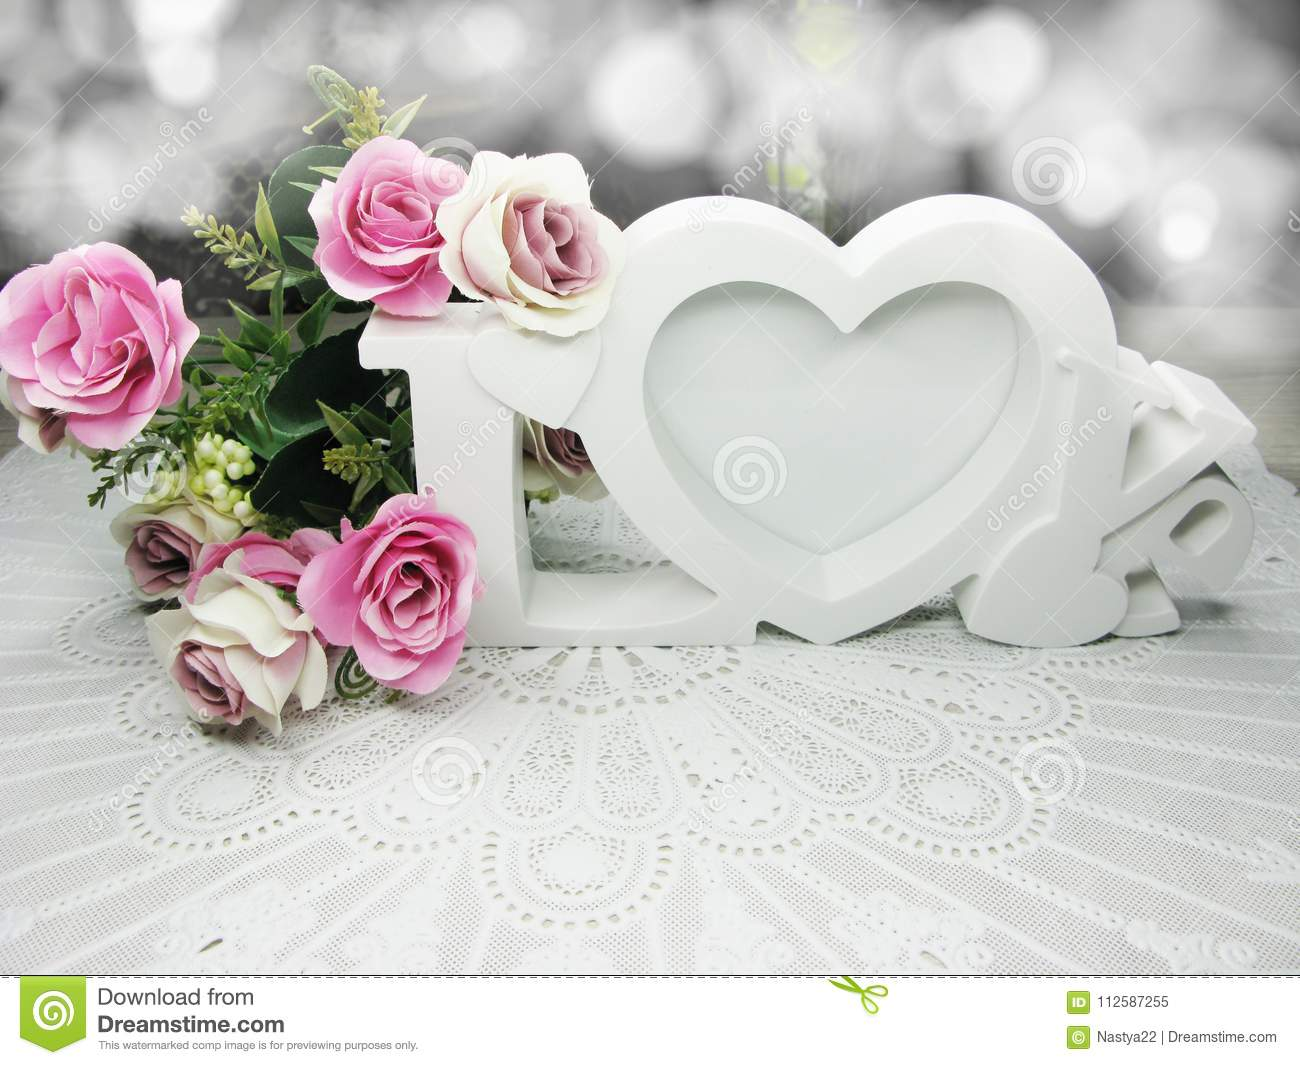 Hearts And Rose Flowers Greeting Card Valentine`s Day Love